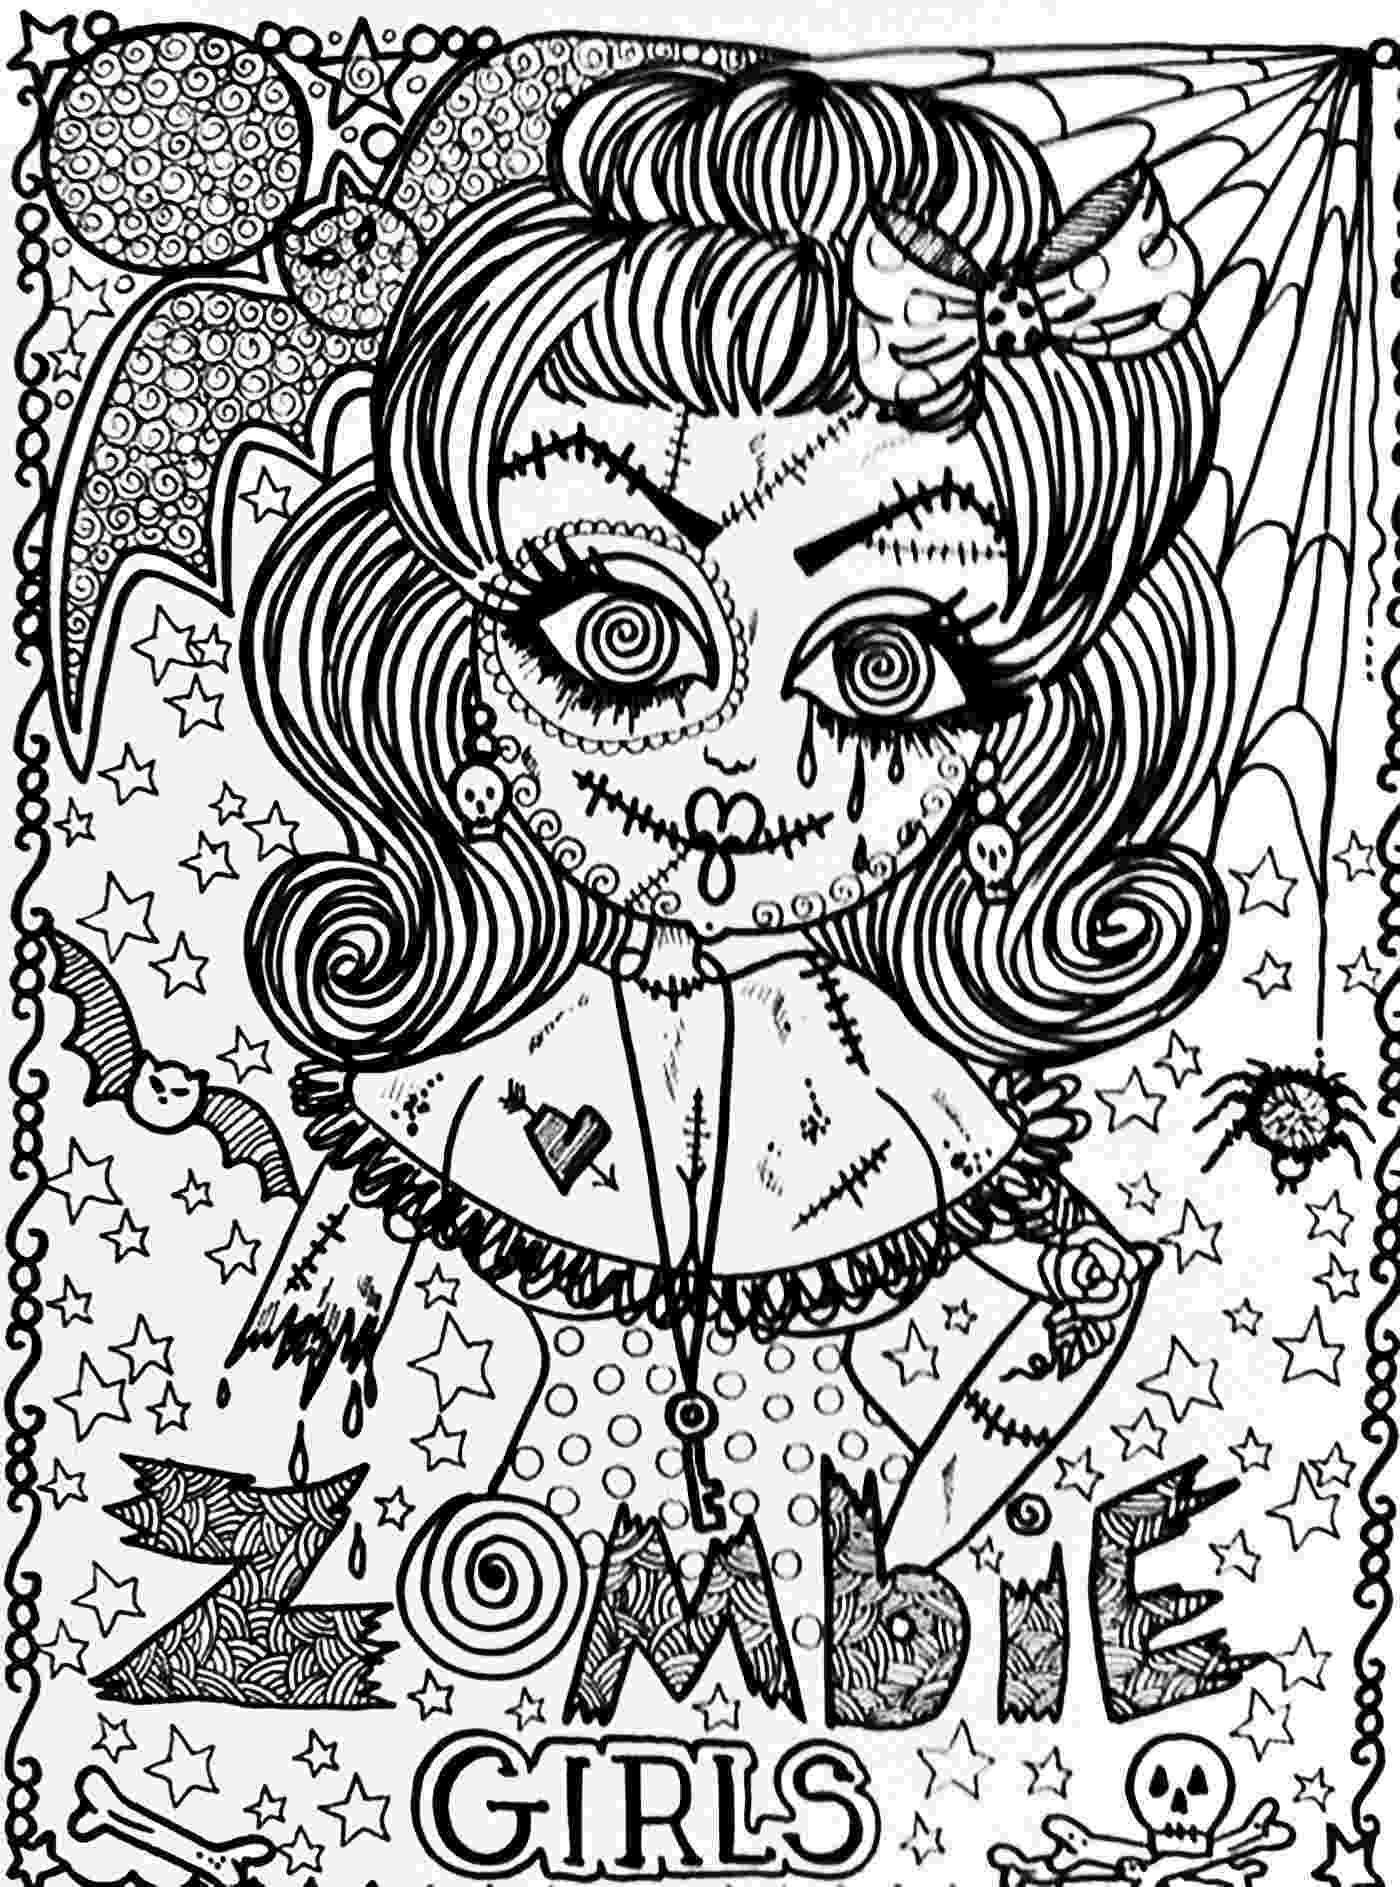 coloring pages for adults halloween halloween zombie girl halloween adult coloring pages adults for halloween pages coloring